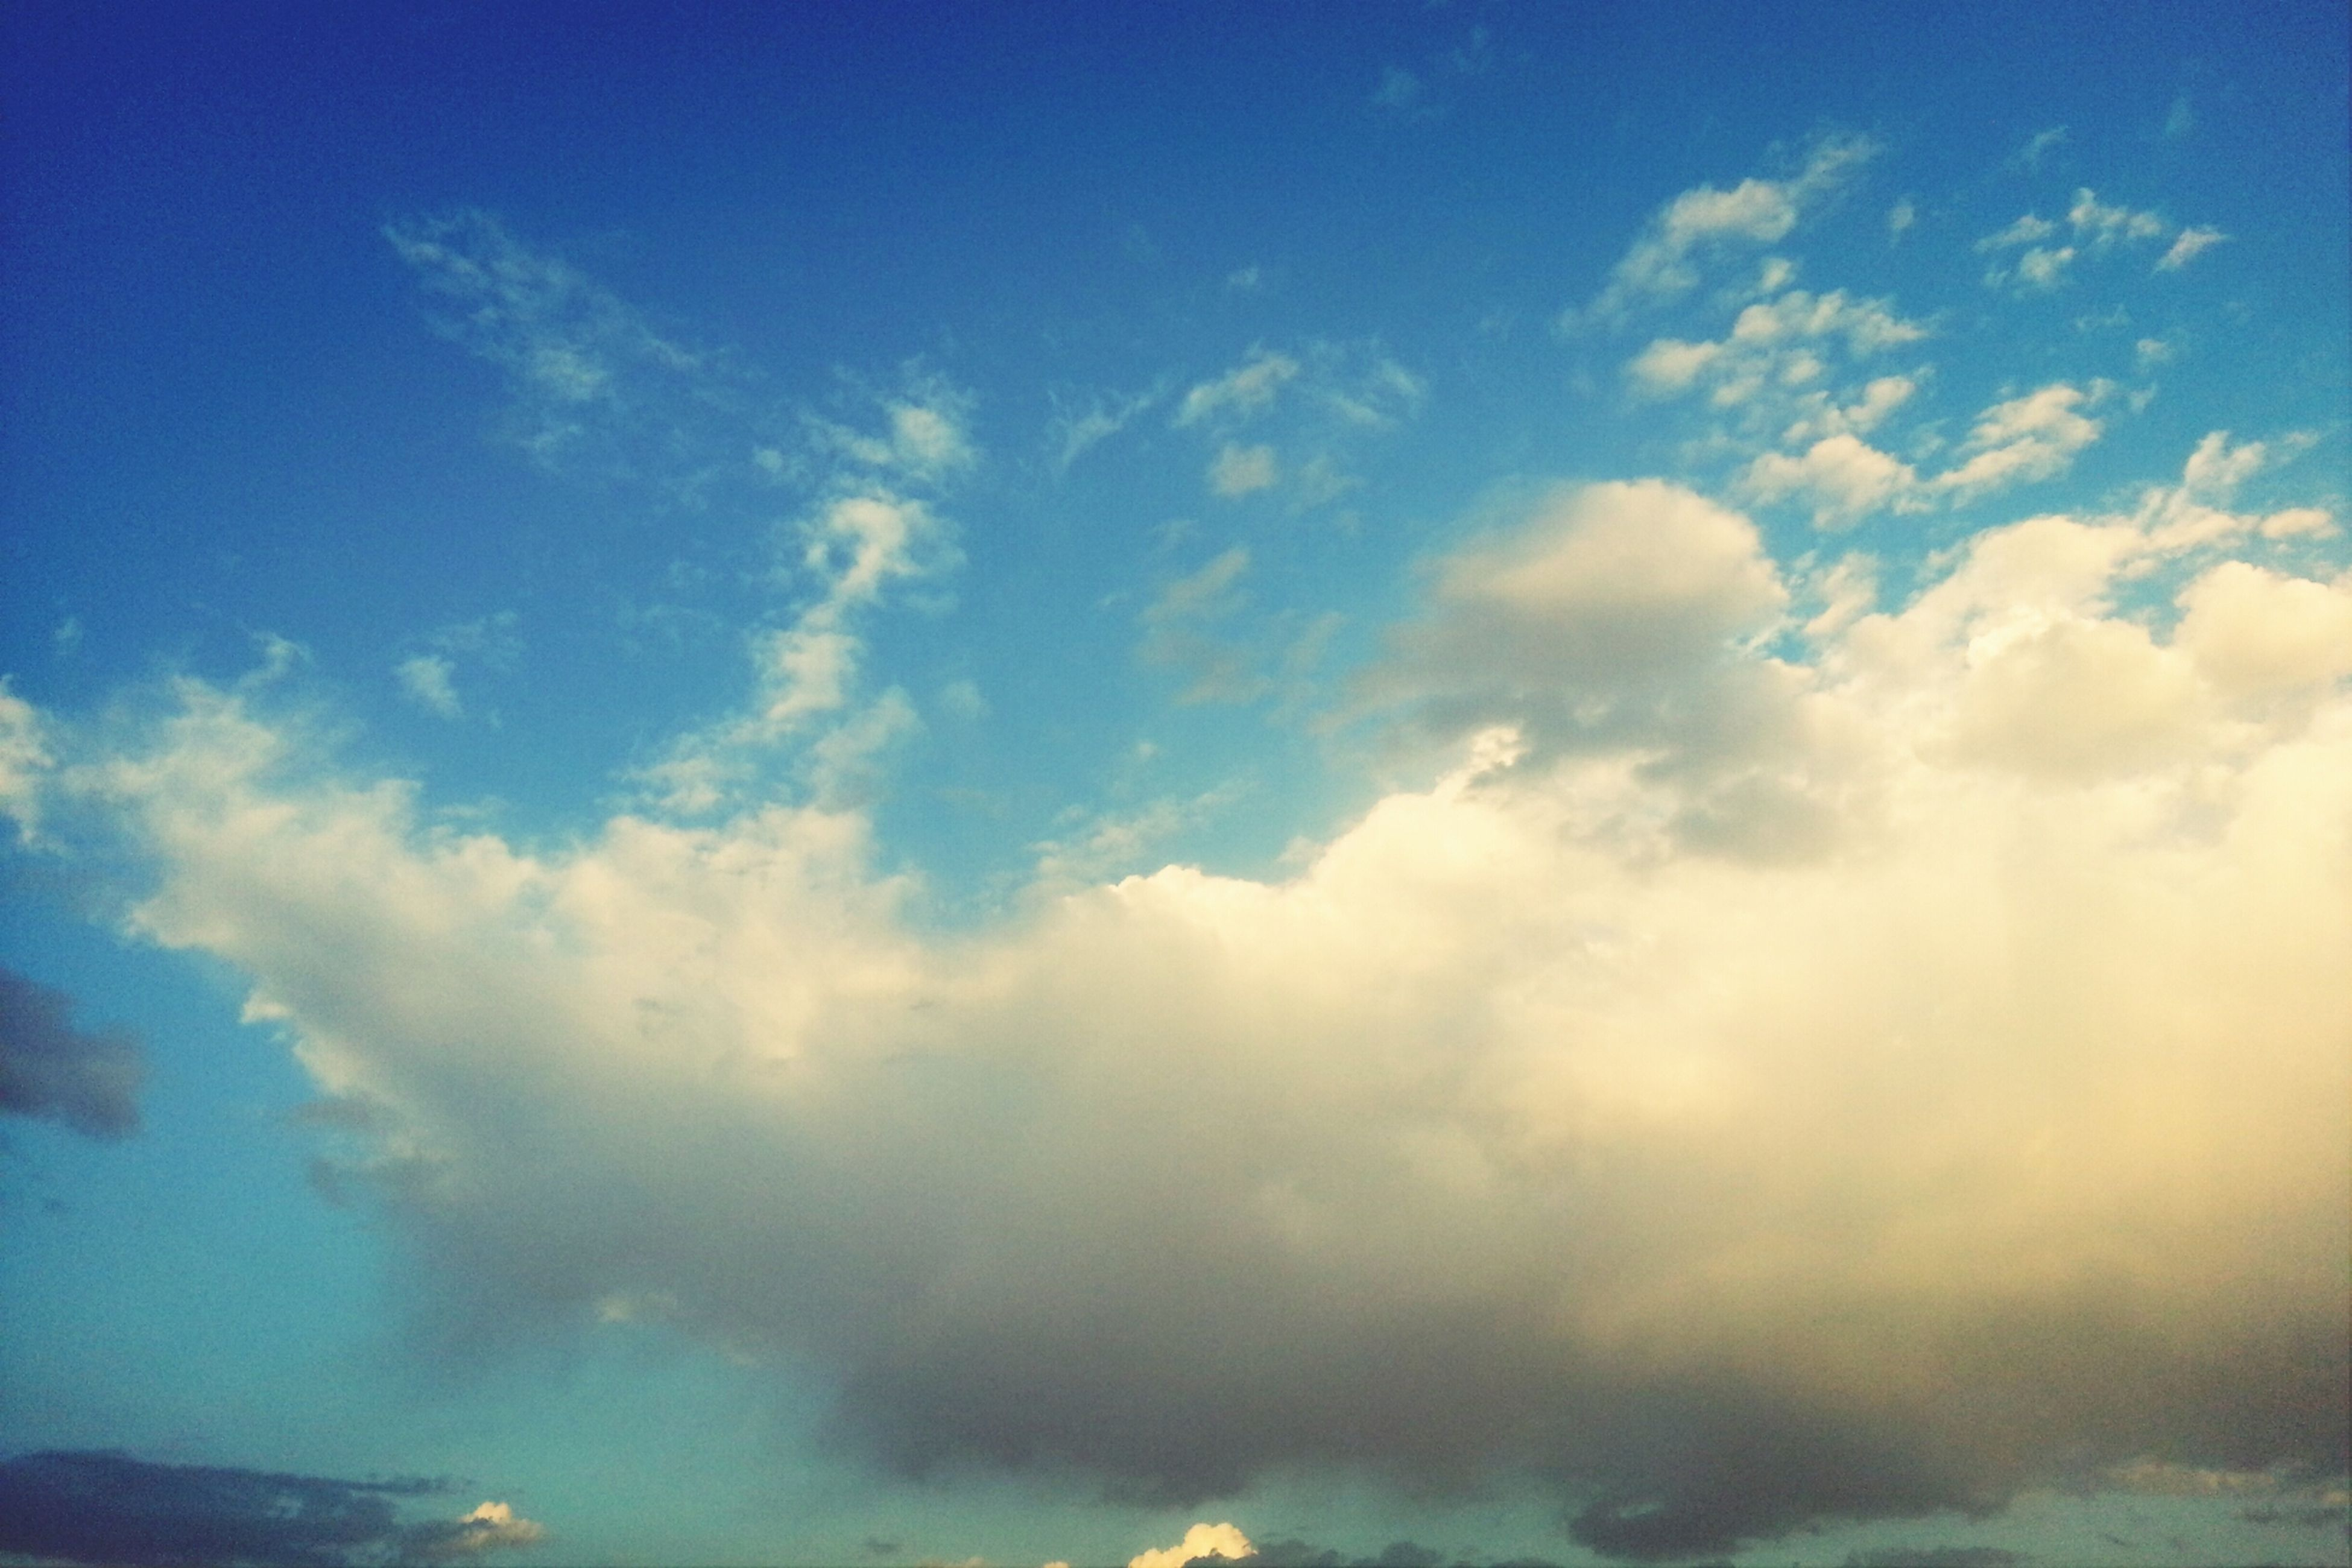 sky, blue, cloud - sky, beauty in nature, low angle view, sky only, scenics, tranquility, nature, tranquil scene, cloudscape, cloud, cloudy, idyllic, backgrounds, outdoors, white color, no people, majestic, day